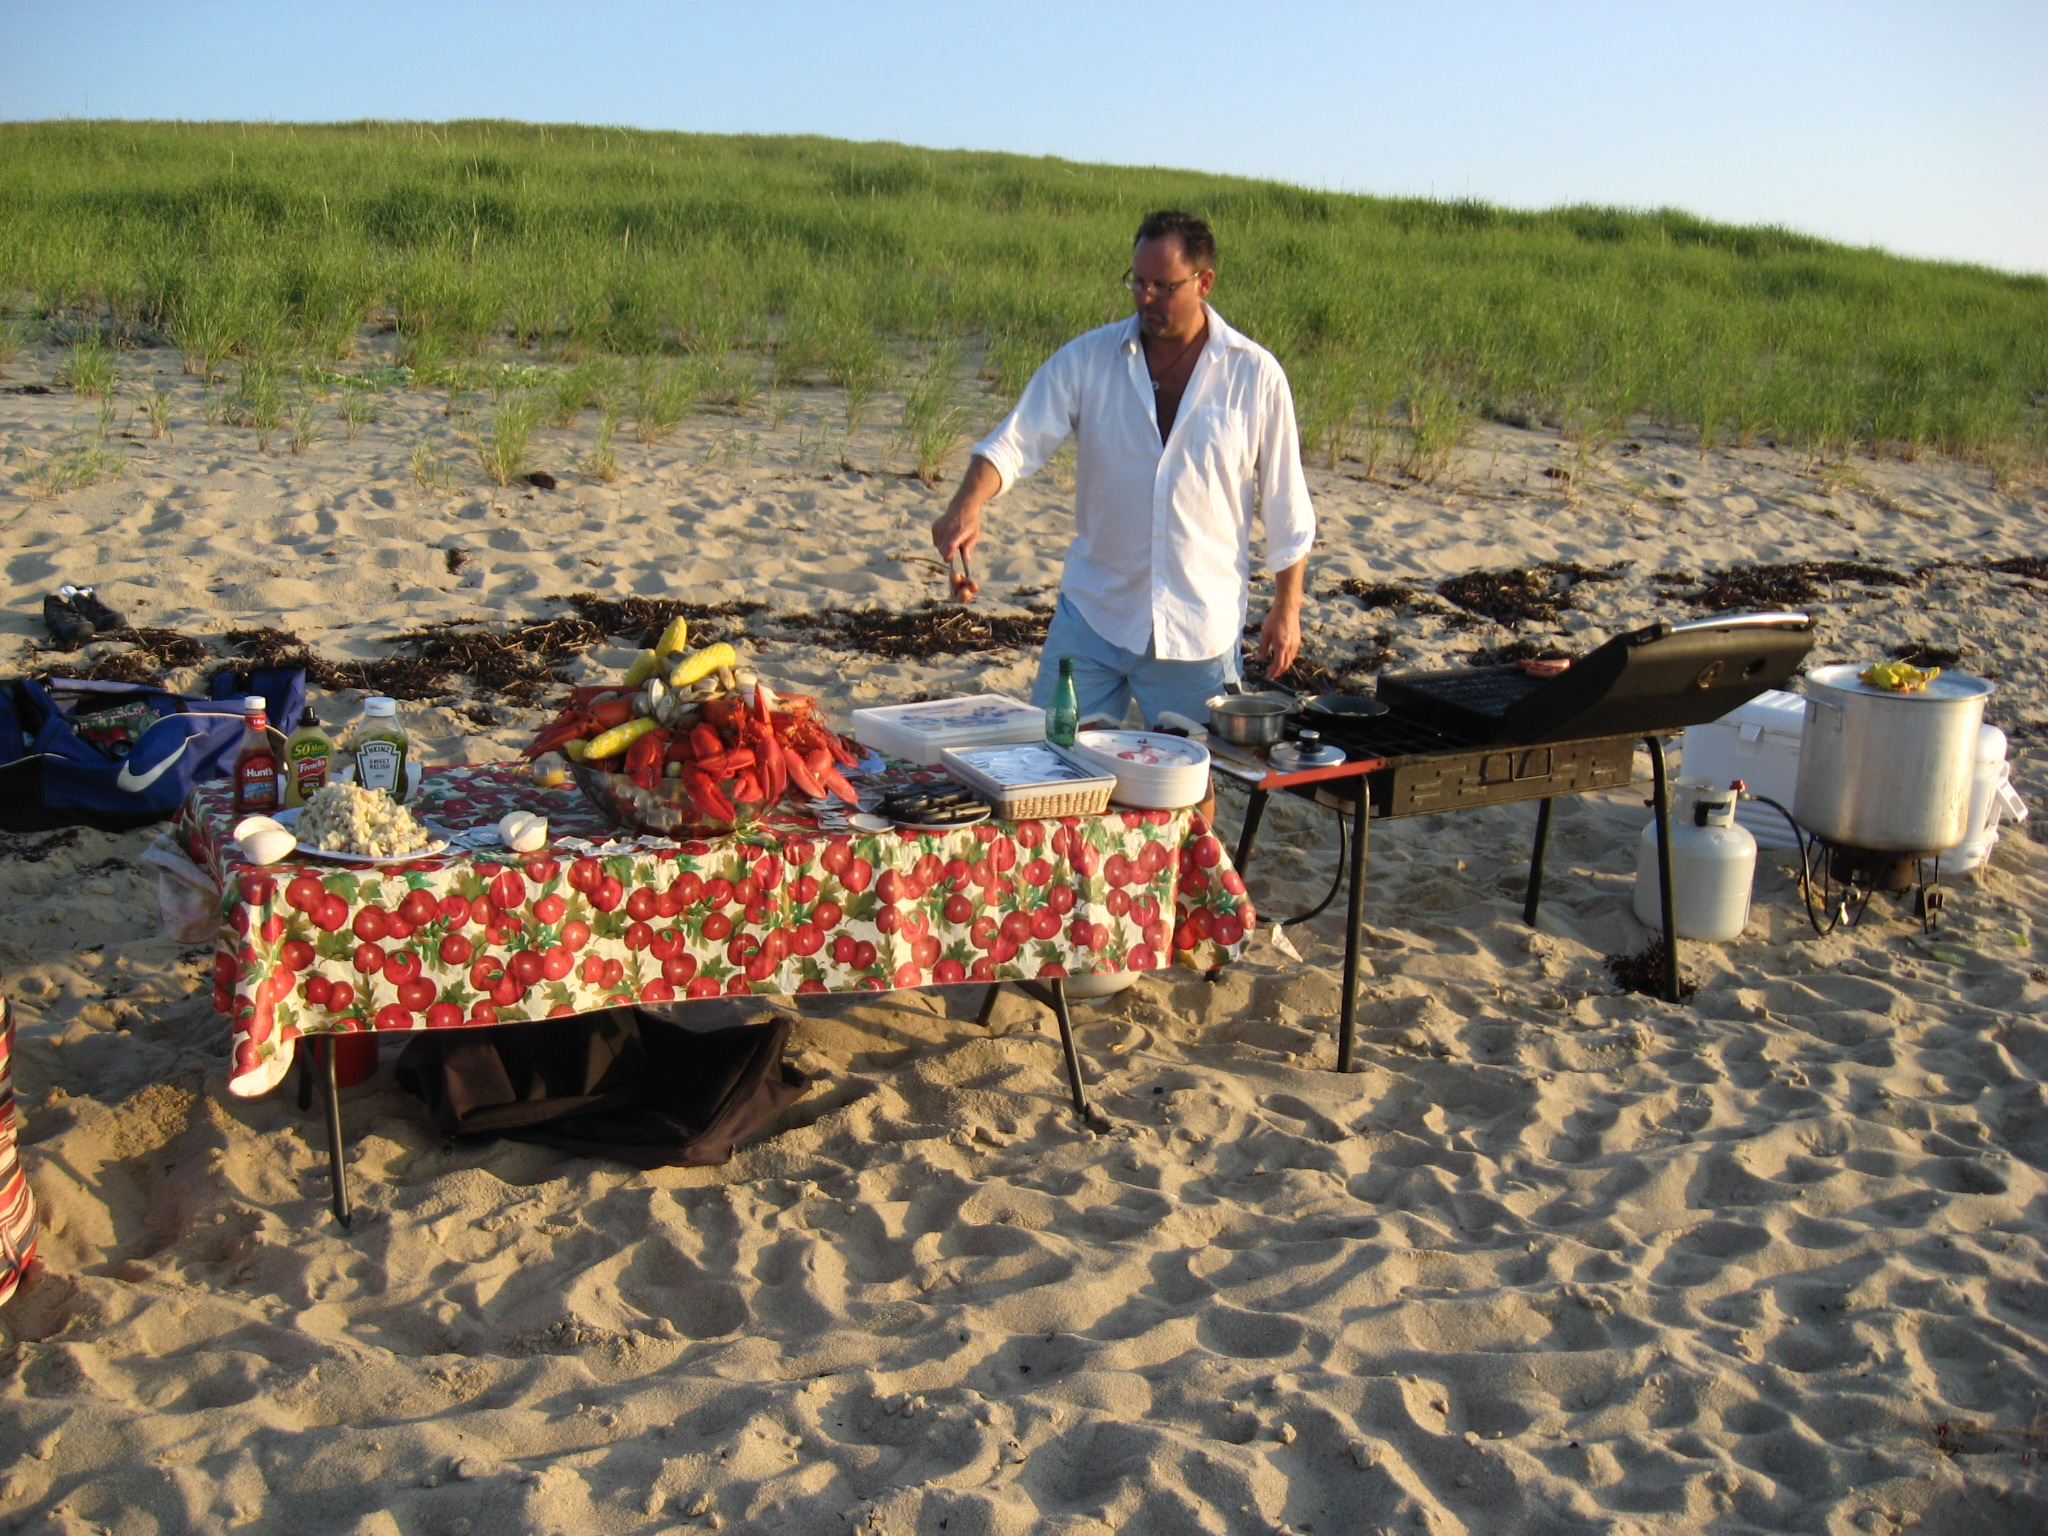 Outer Cape Clambake - With just a phone call you bring a personal chef from Outer Cape Clam Bake ...